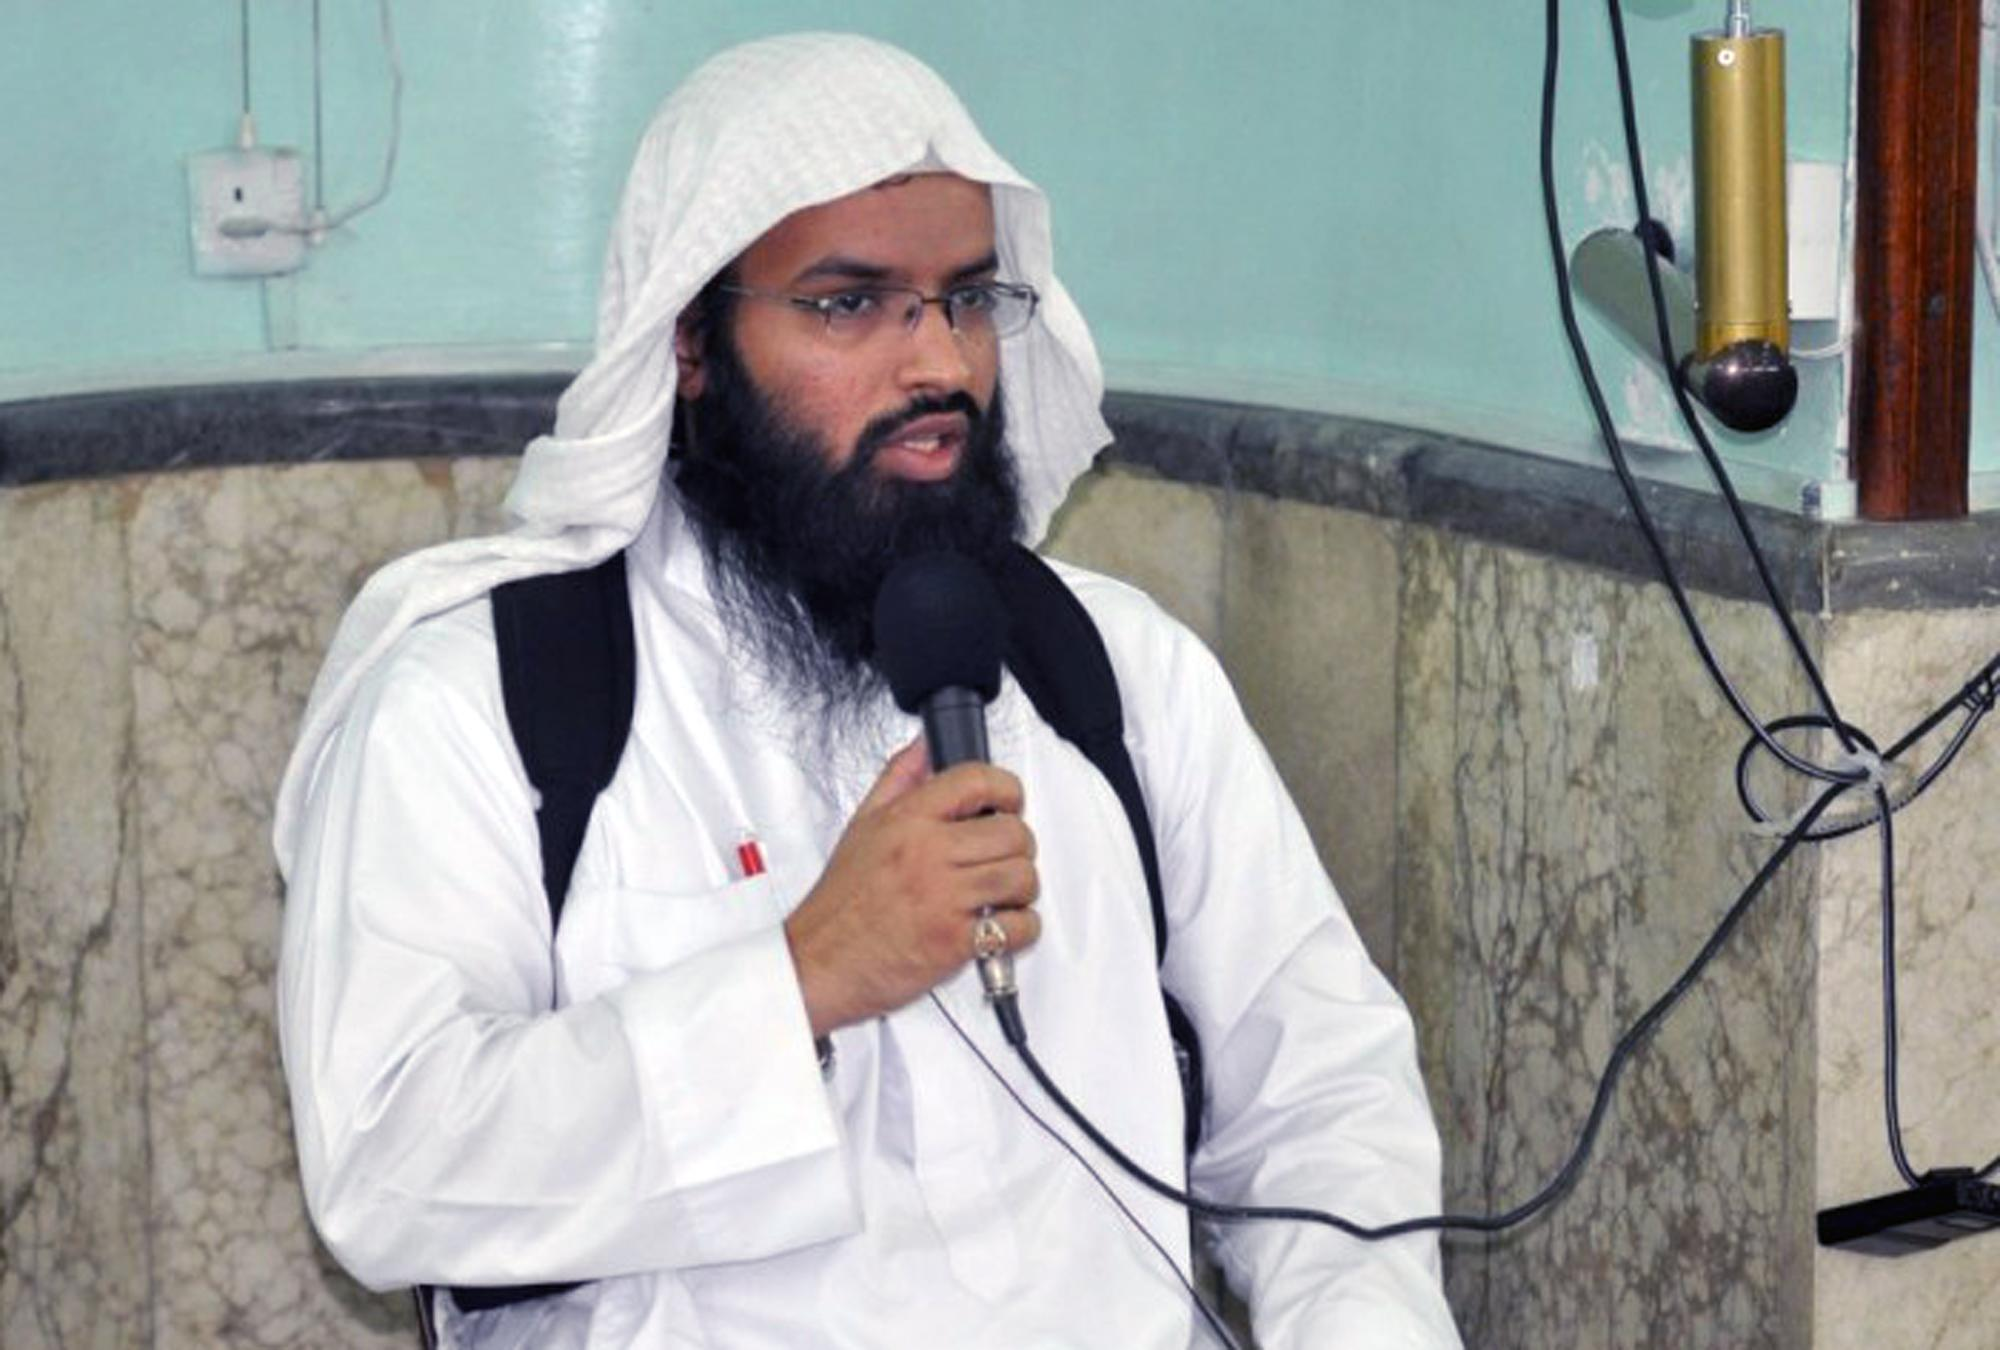 Fiery Islamic State group cleric gives voice to radicals